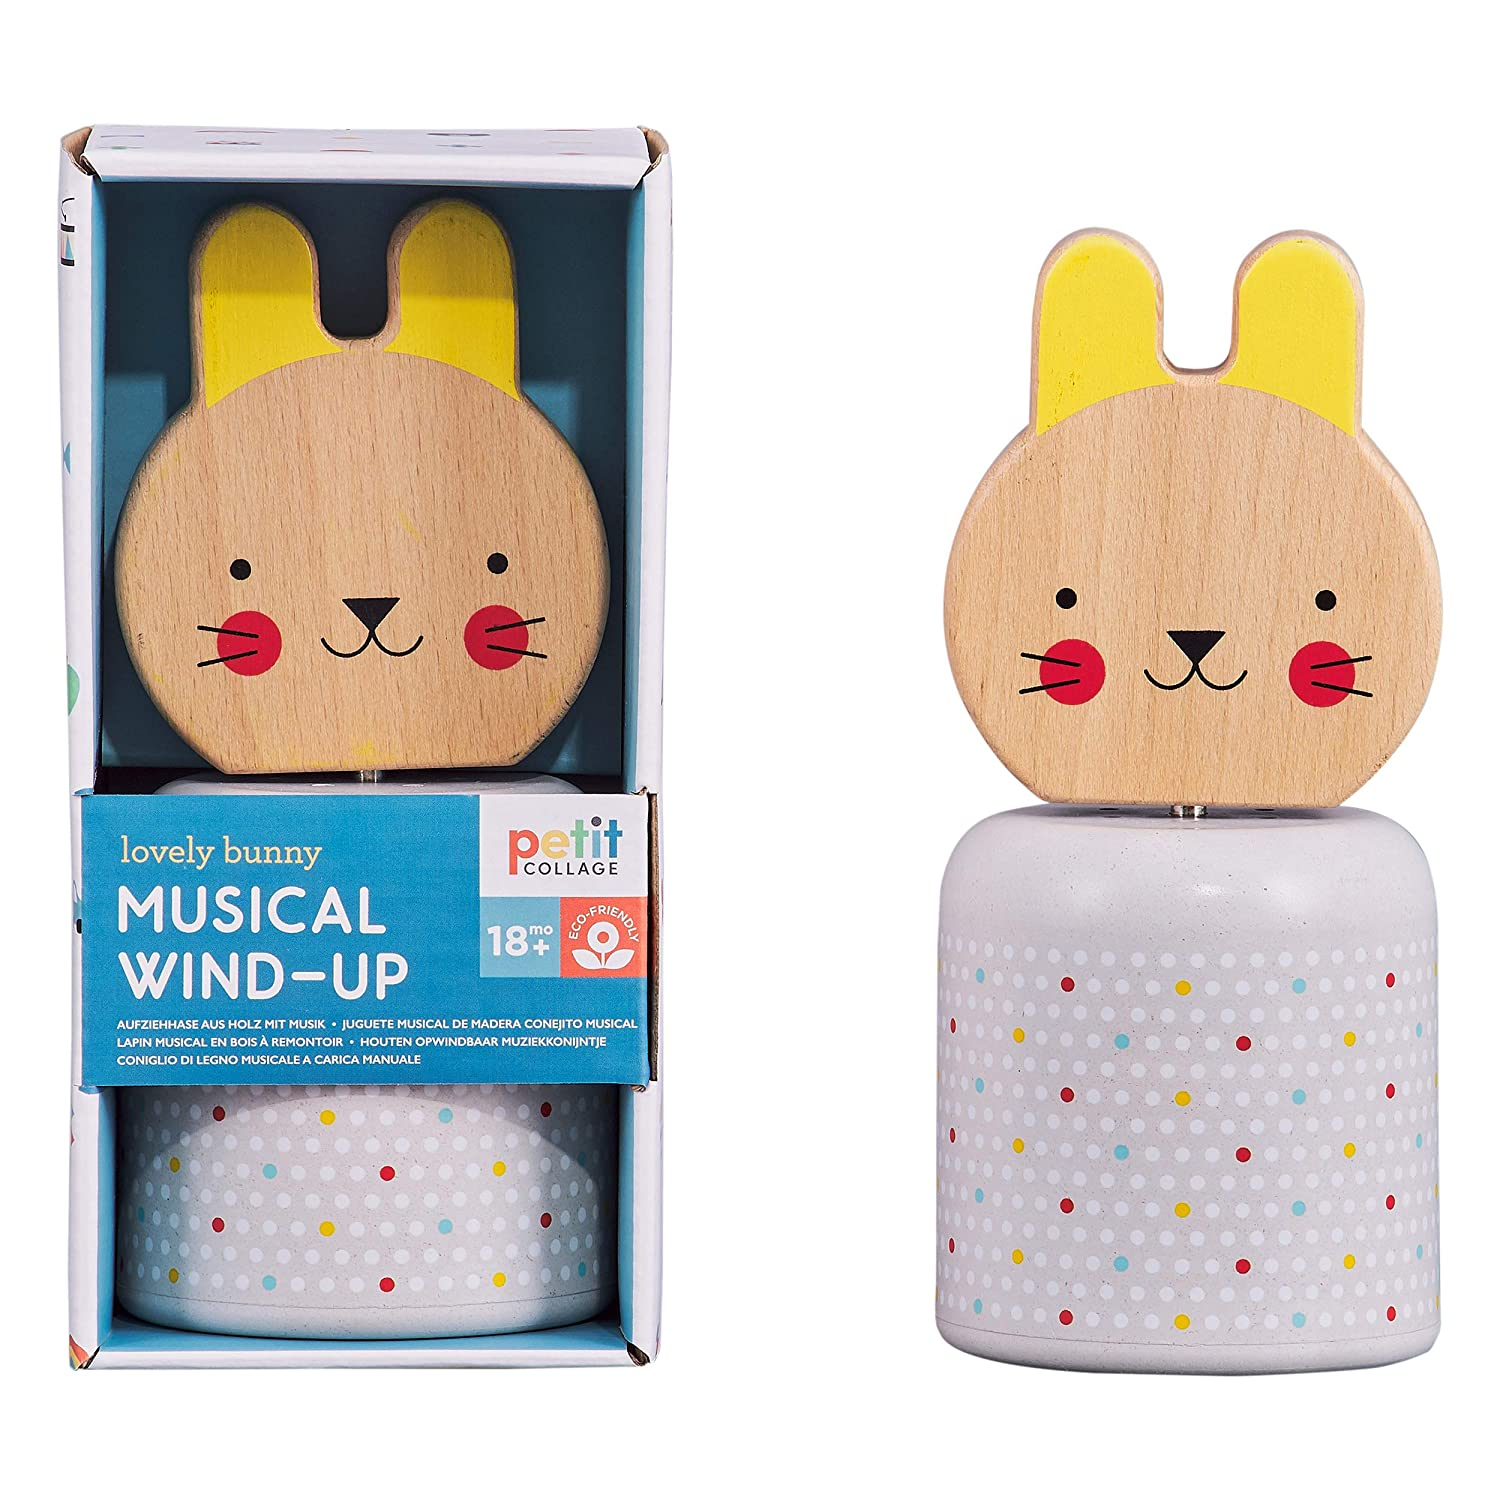 Petit Max 56% OFF Collage Baby Wooden Discount mail order Wind-Up Musical Toy Bunny Cute –